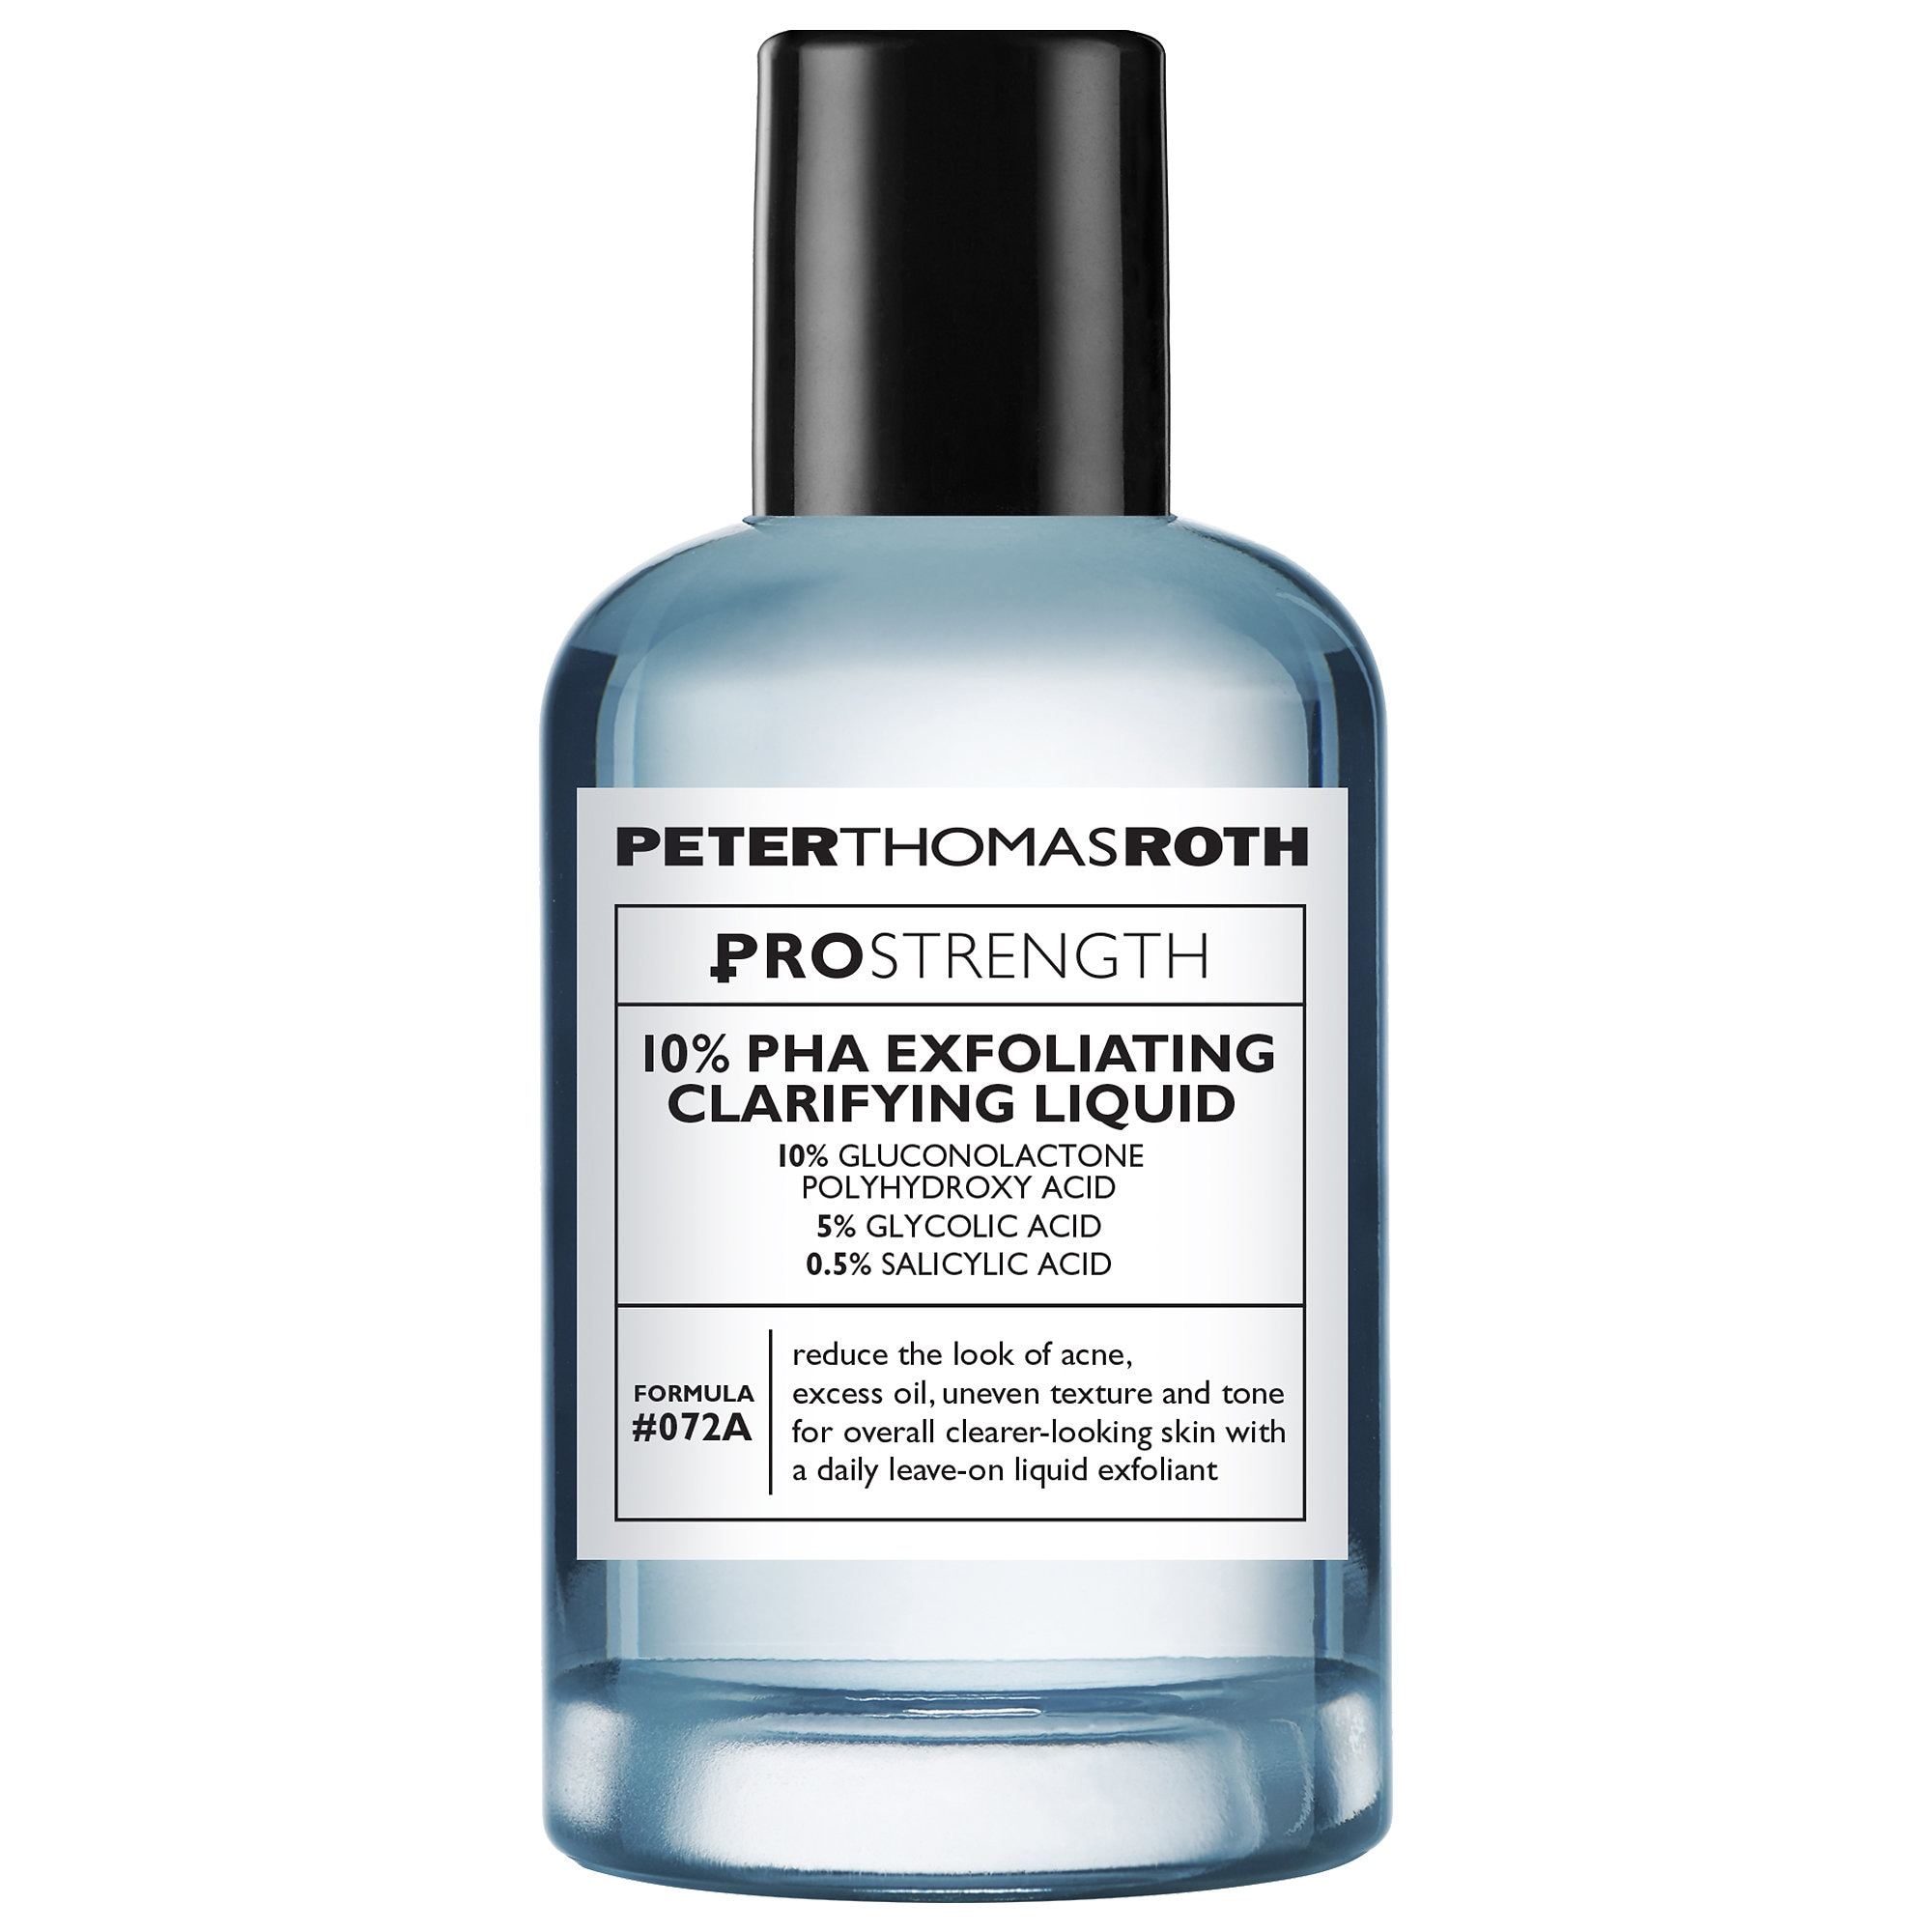 Peter Thomas Roth - PRO Strength 10% PHA Exfoliating Clarifying Liquid